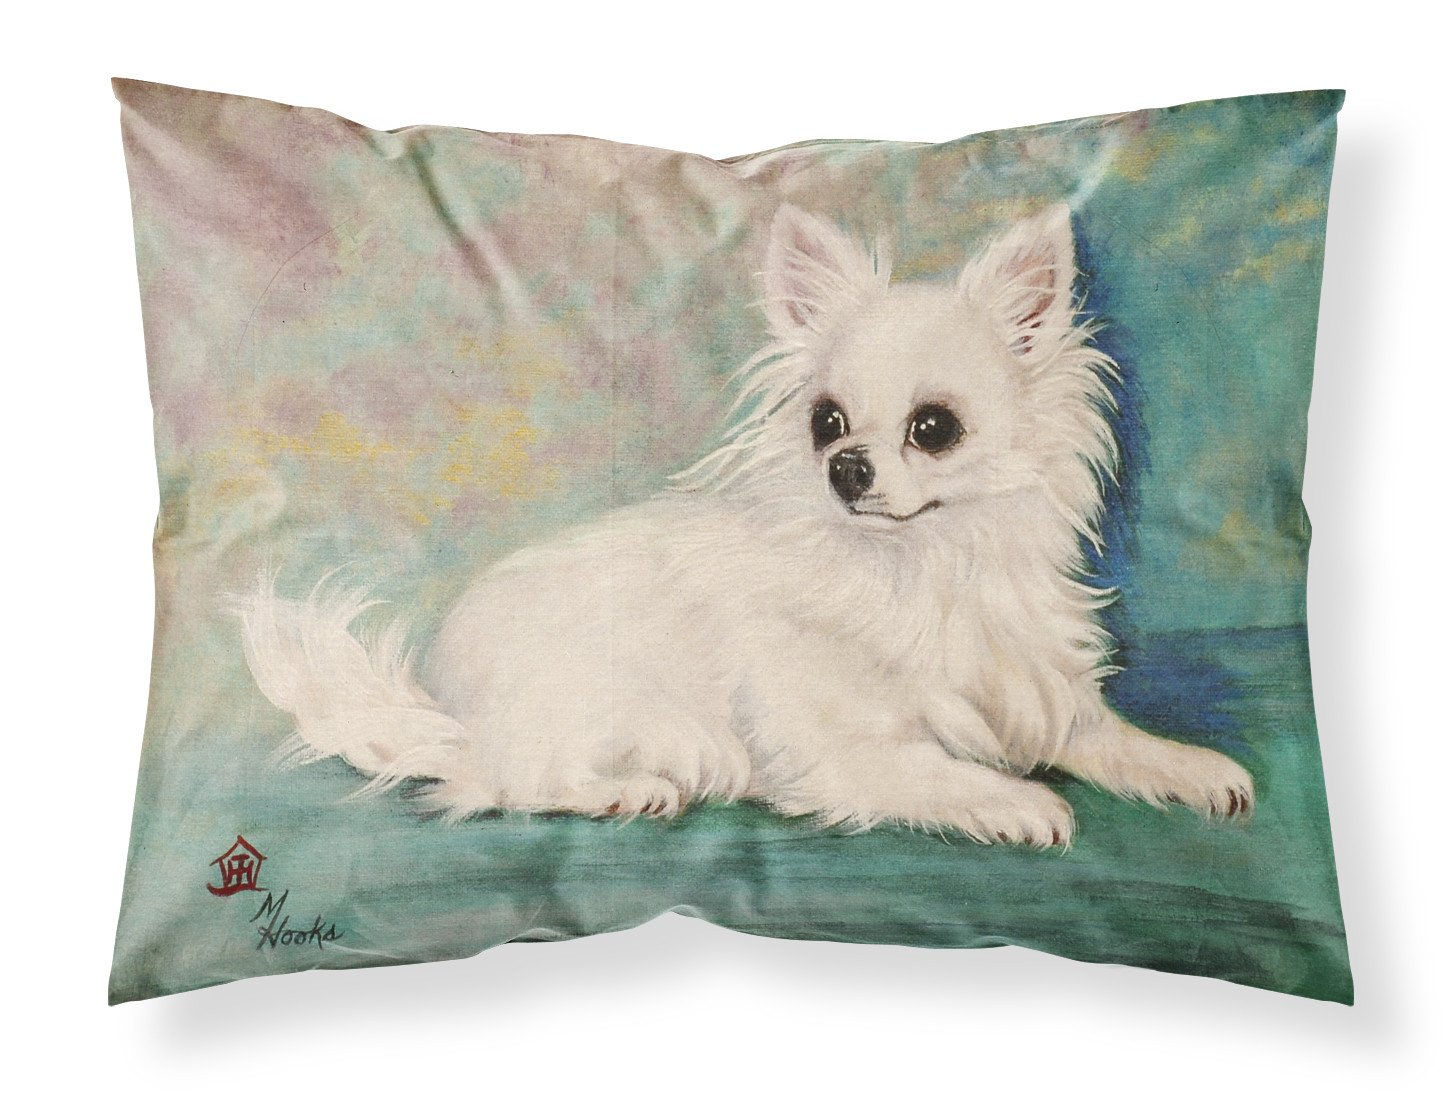 Chihuahua Queen Mother Fabric Standard Pillowcase MH1057PILLOWCASE by Caroline's Treasures